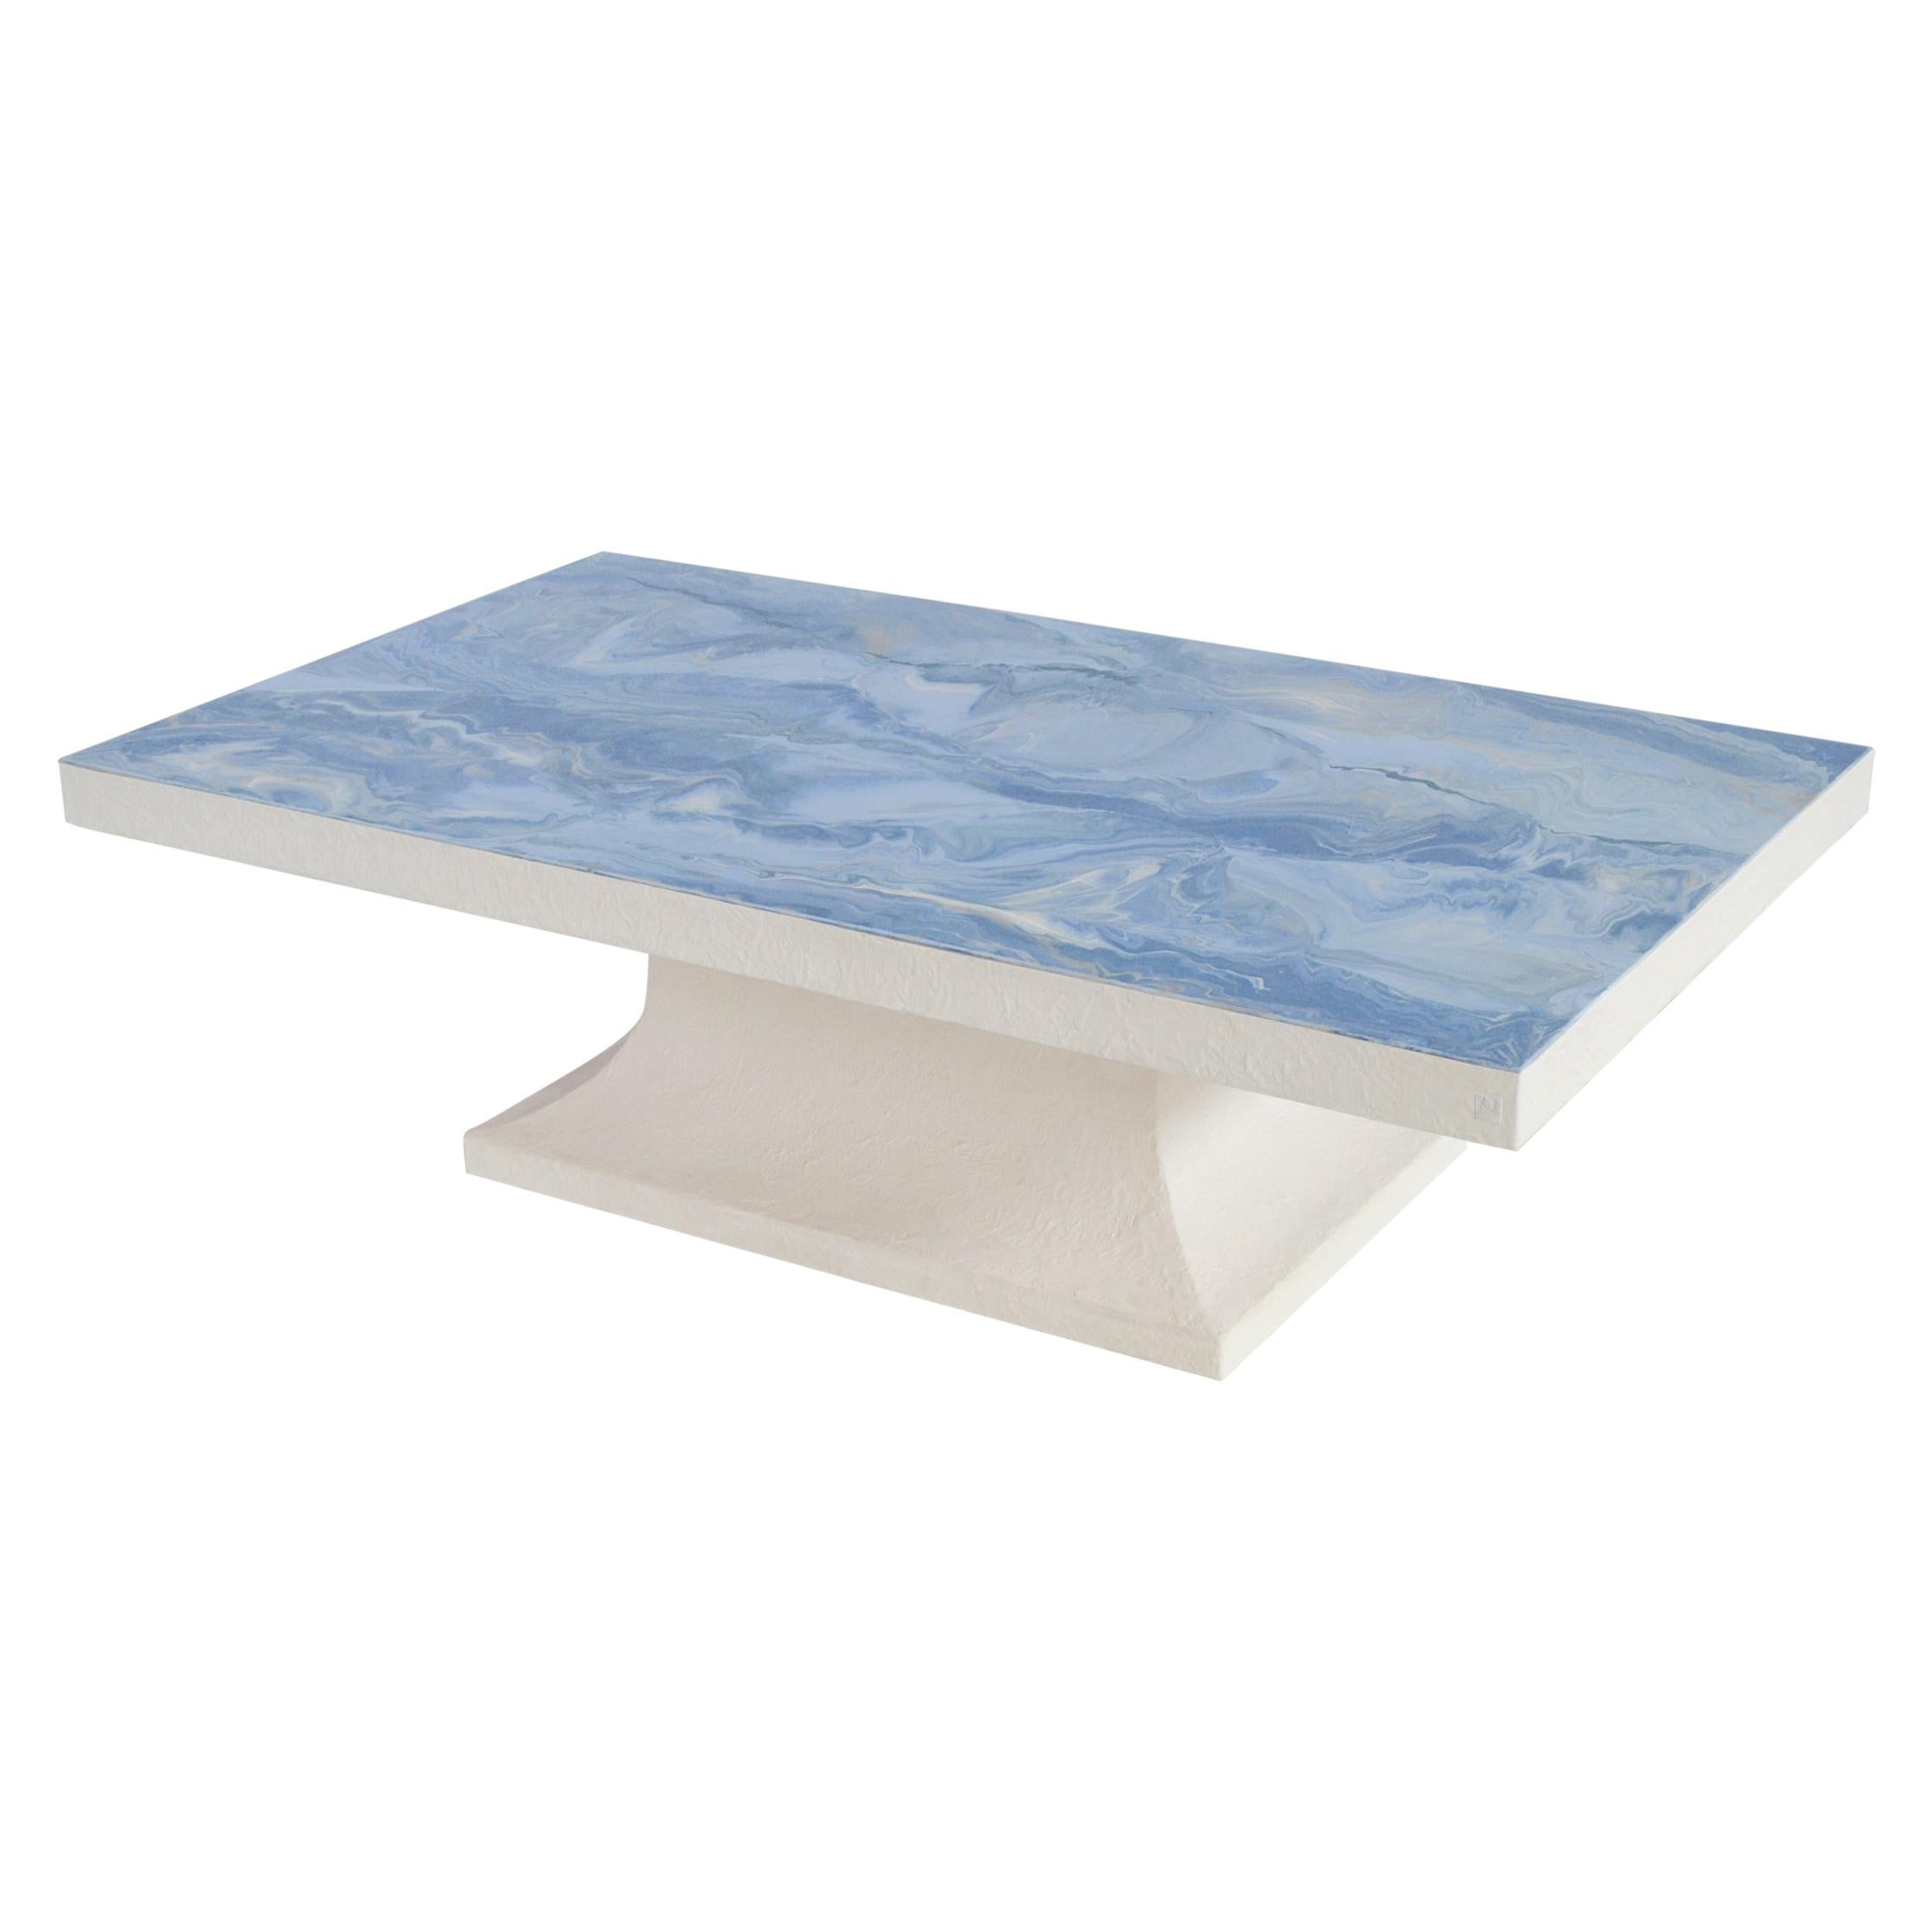 light blue coffee table marbled scagliola decorated top white wooden base